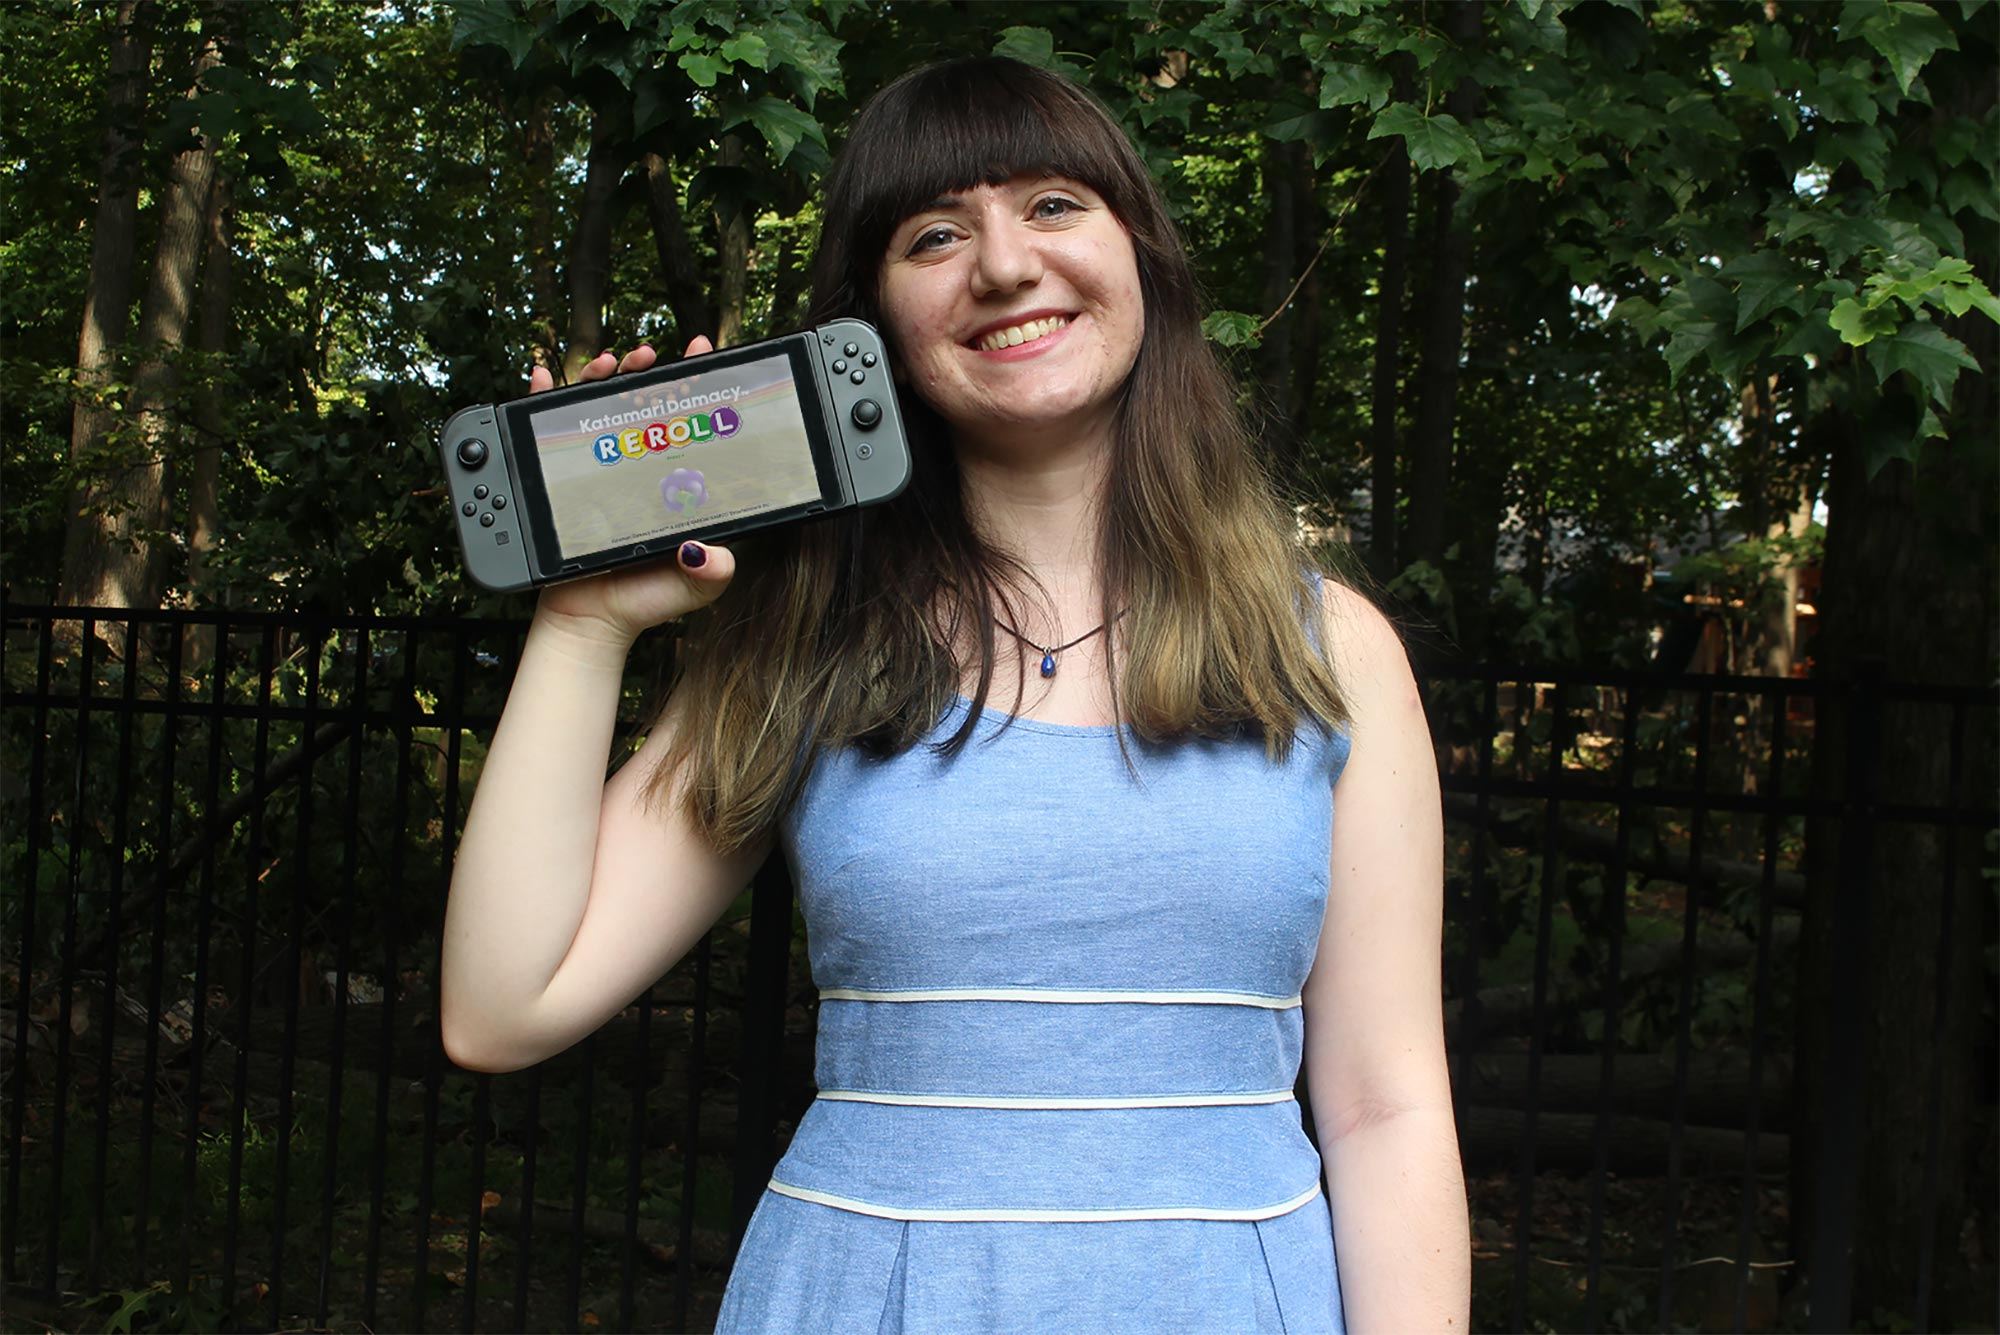 Photo of Sabrina Scotti (CFA'20) in a light blue dress holding Katamari Damacy REROLL, one of the children's video games she studied as part of her an Undergraduate Research Opportunity Program–funded research into whether games use diverse music styles to further music education. She smiles and bushes are seen in the background.